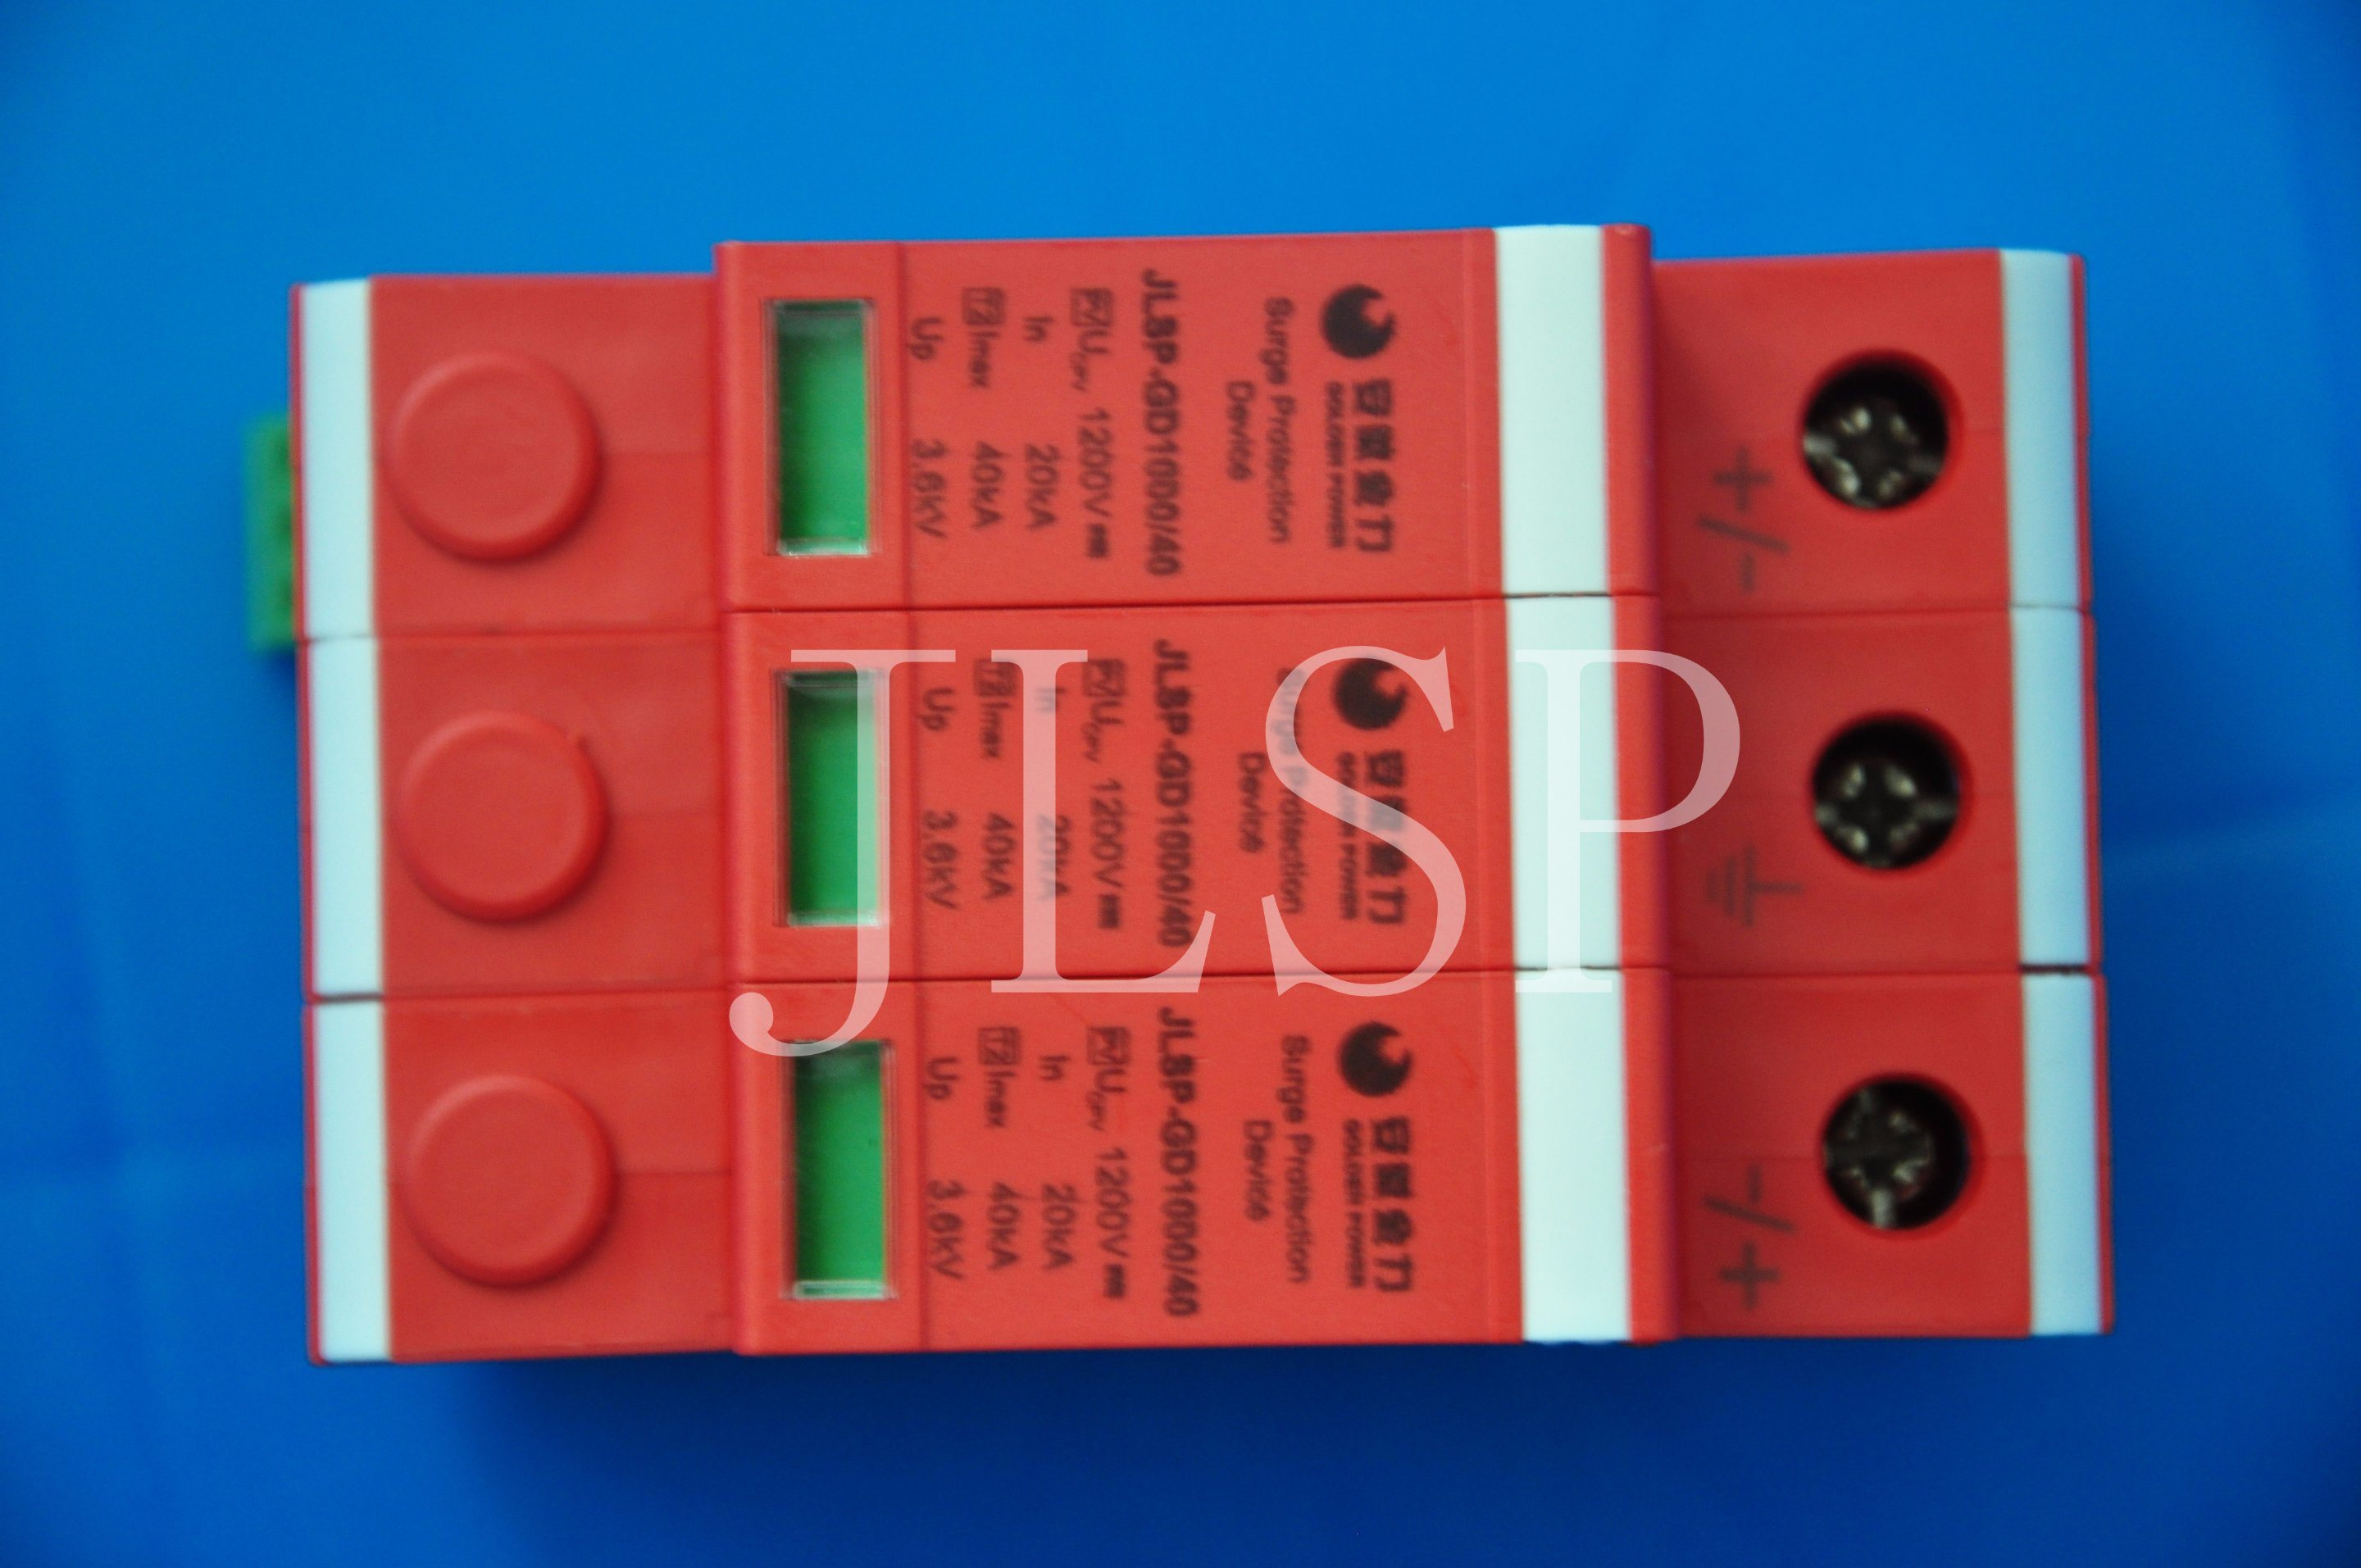 PV Application 20-40ka Solar 3p DC 1000V, Jlsp-Gd1000-40, SPD, Surge Protector, 17002